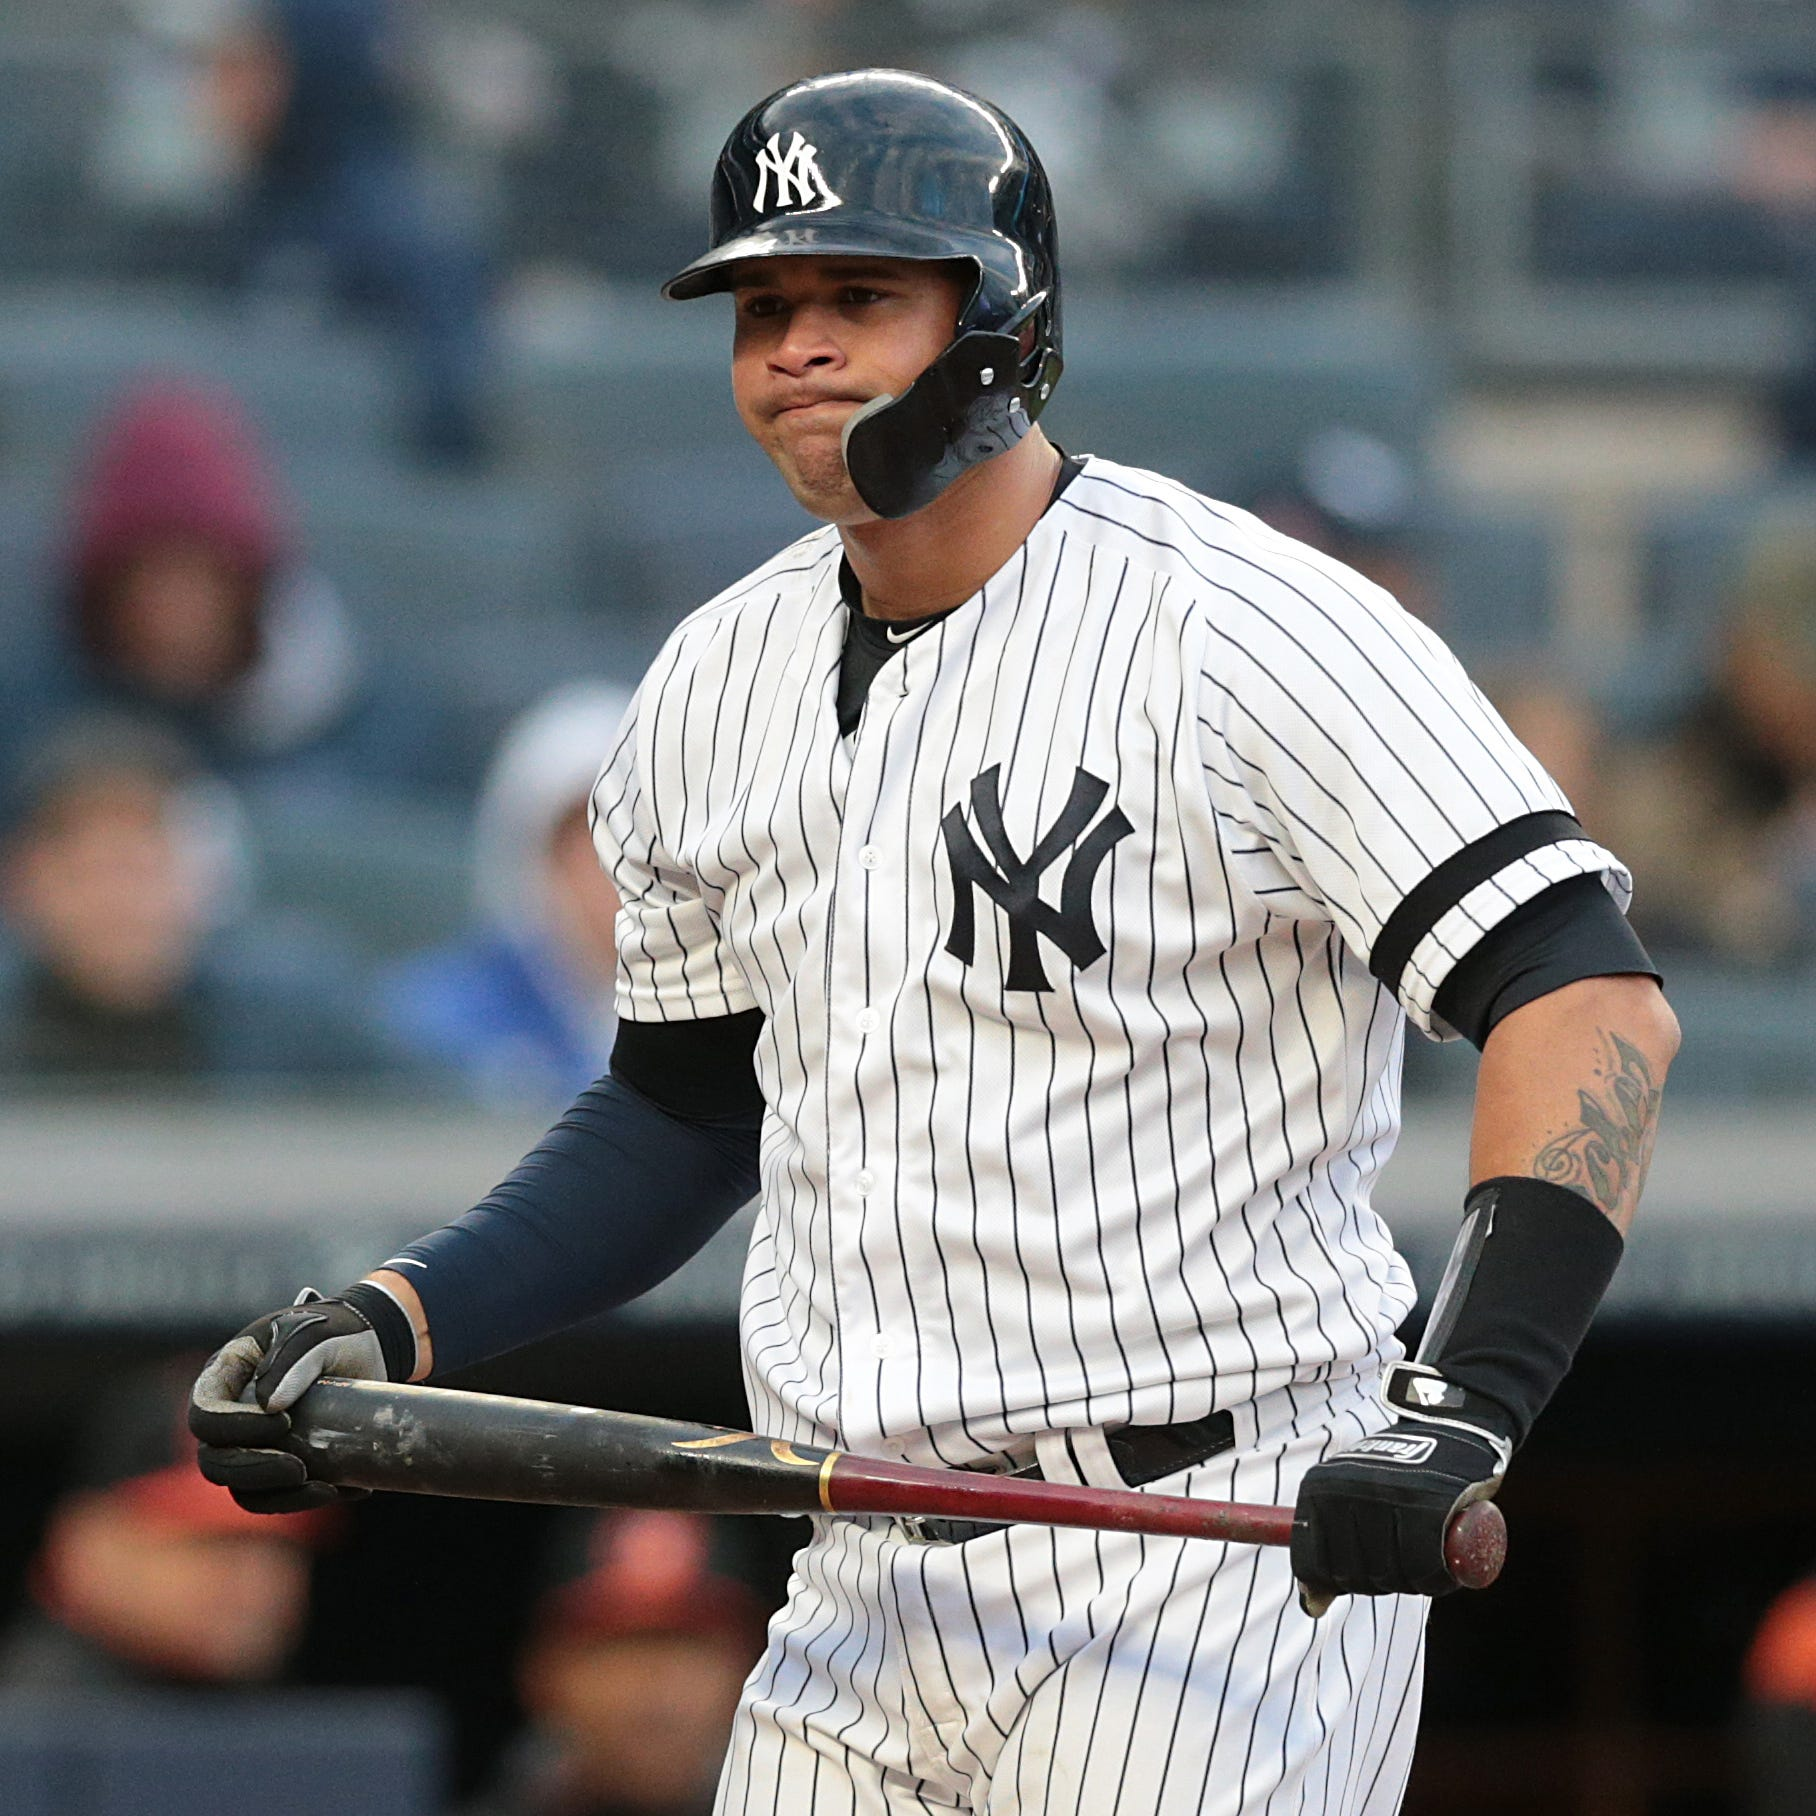 Yankees place Gary Sanchez on injured list, call up catcher Kyle Higashioka